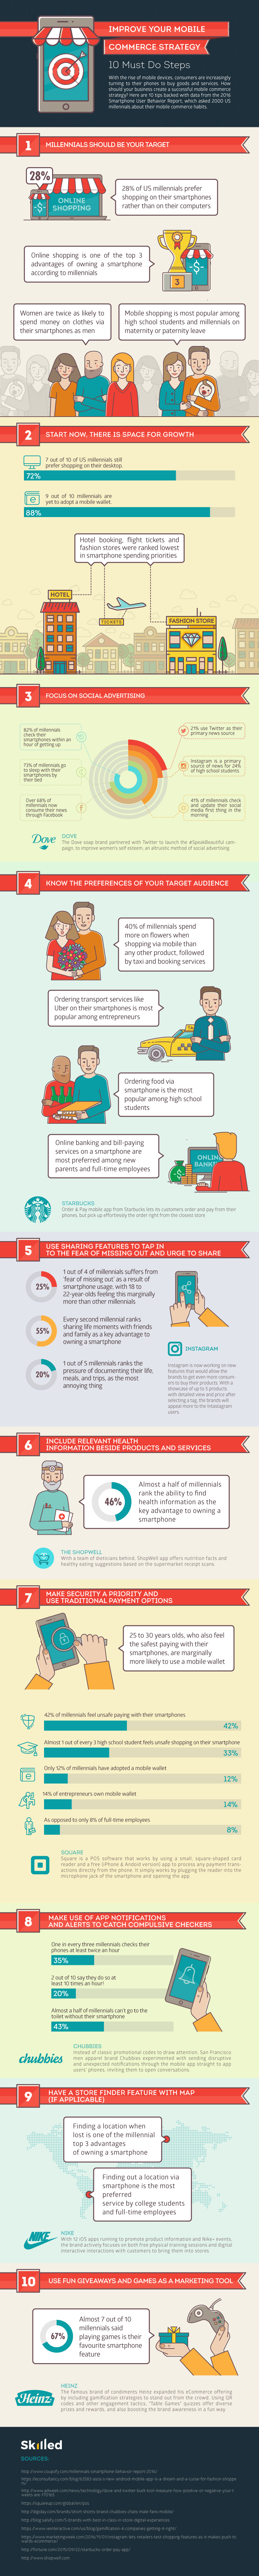 mobile commerce strategy